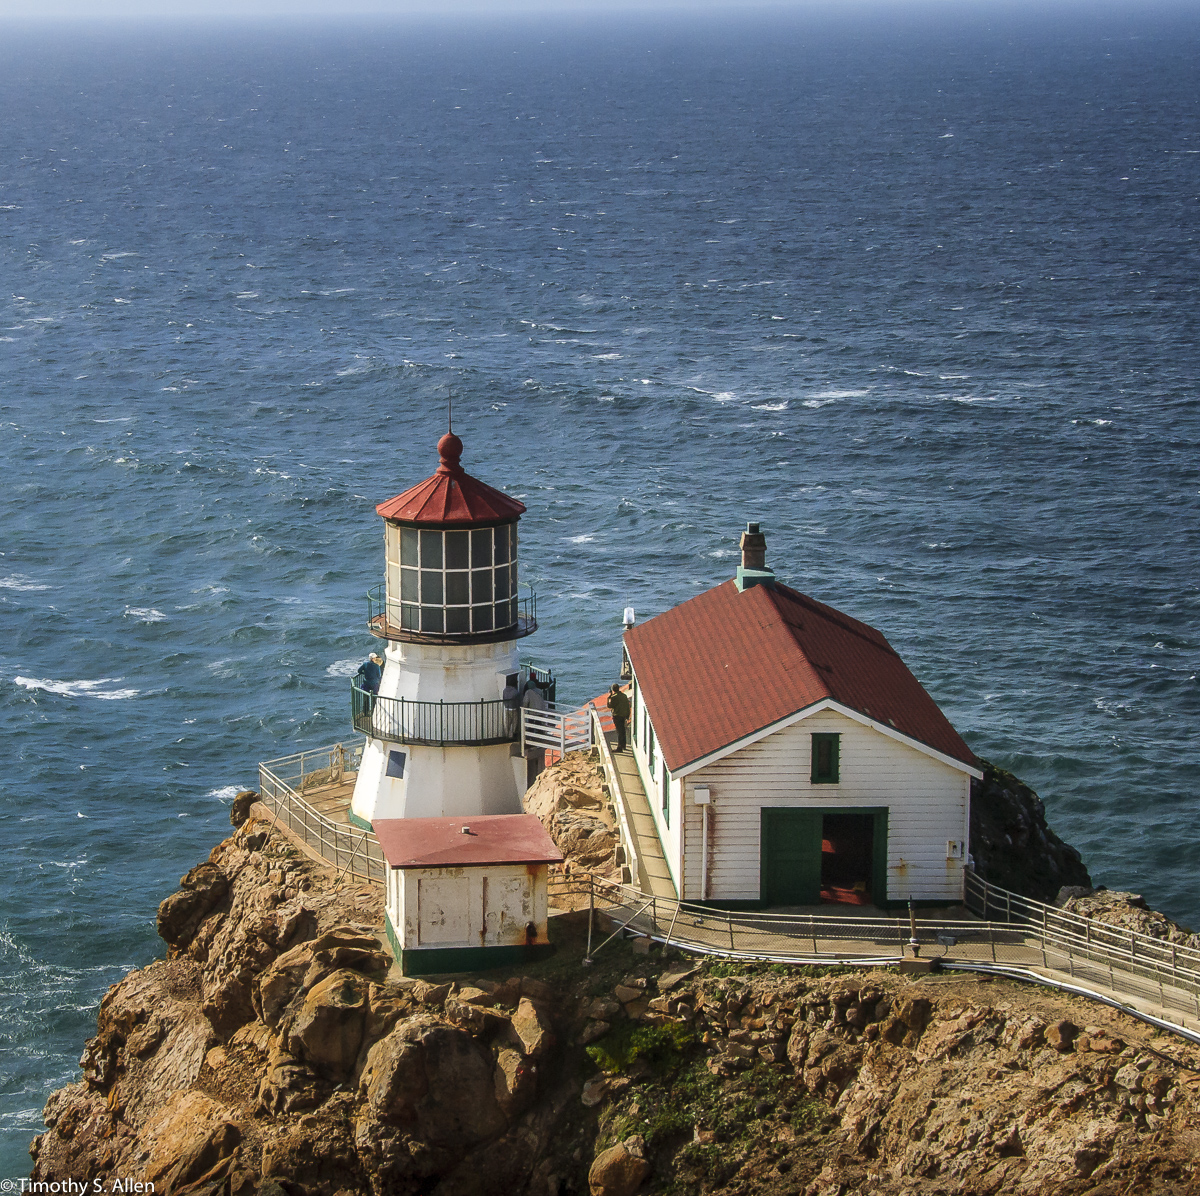 Point Reyes Lighthouse Point Reyes National Seashore January 7, 2013